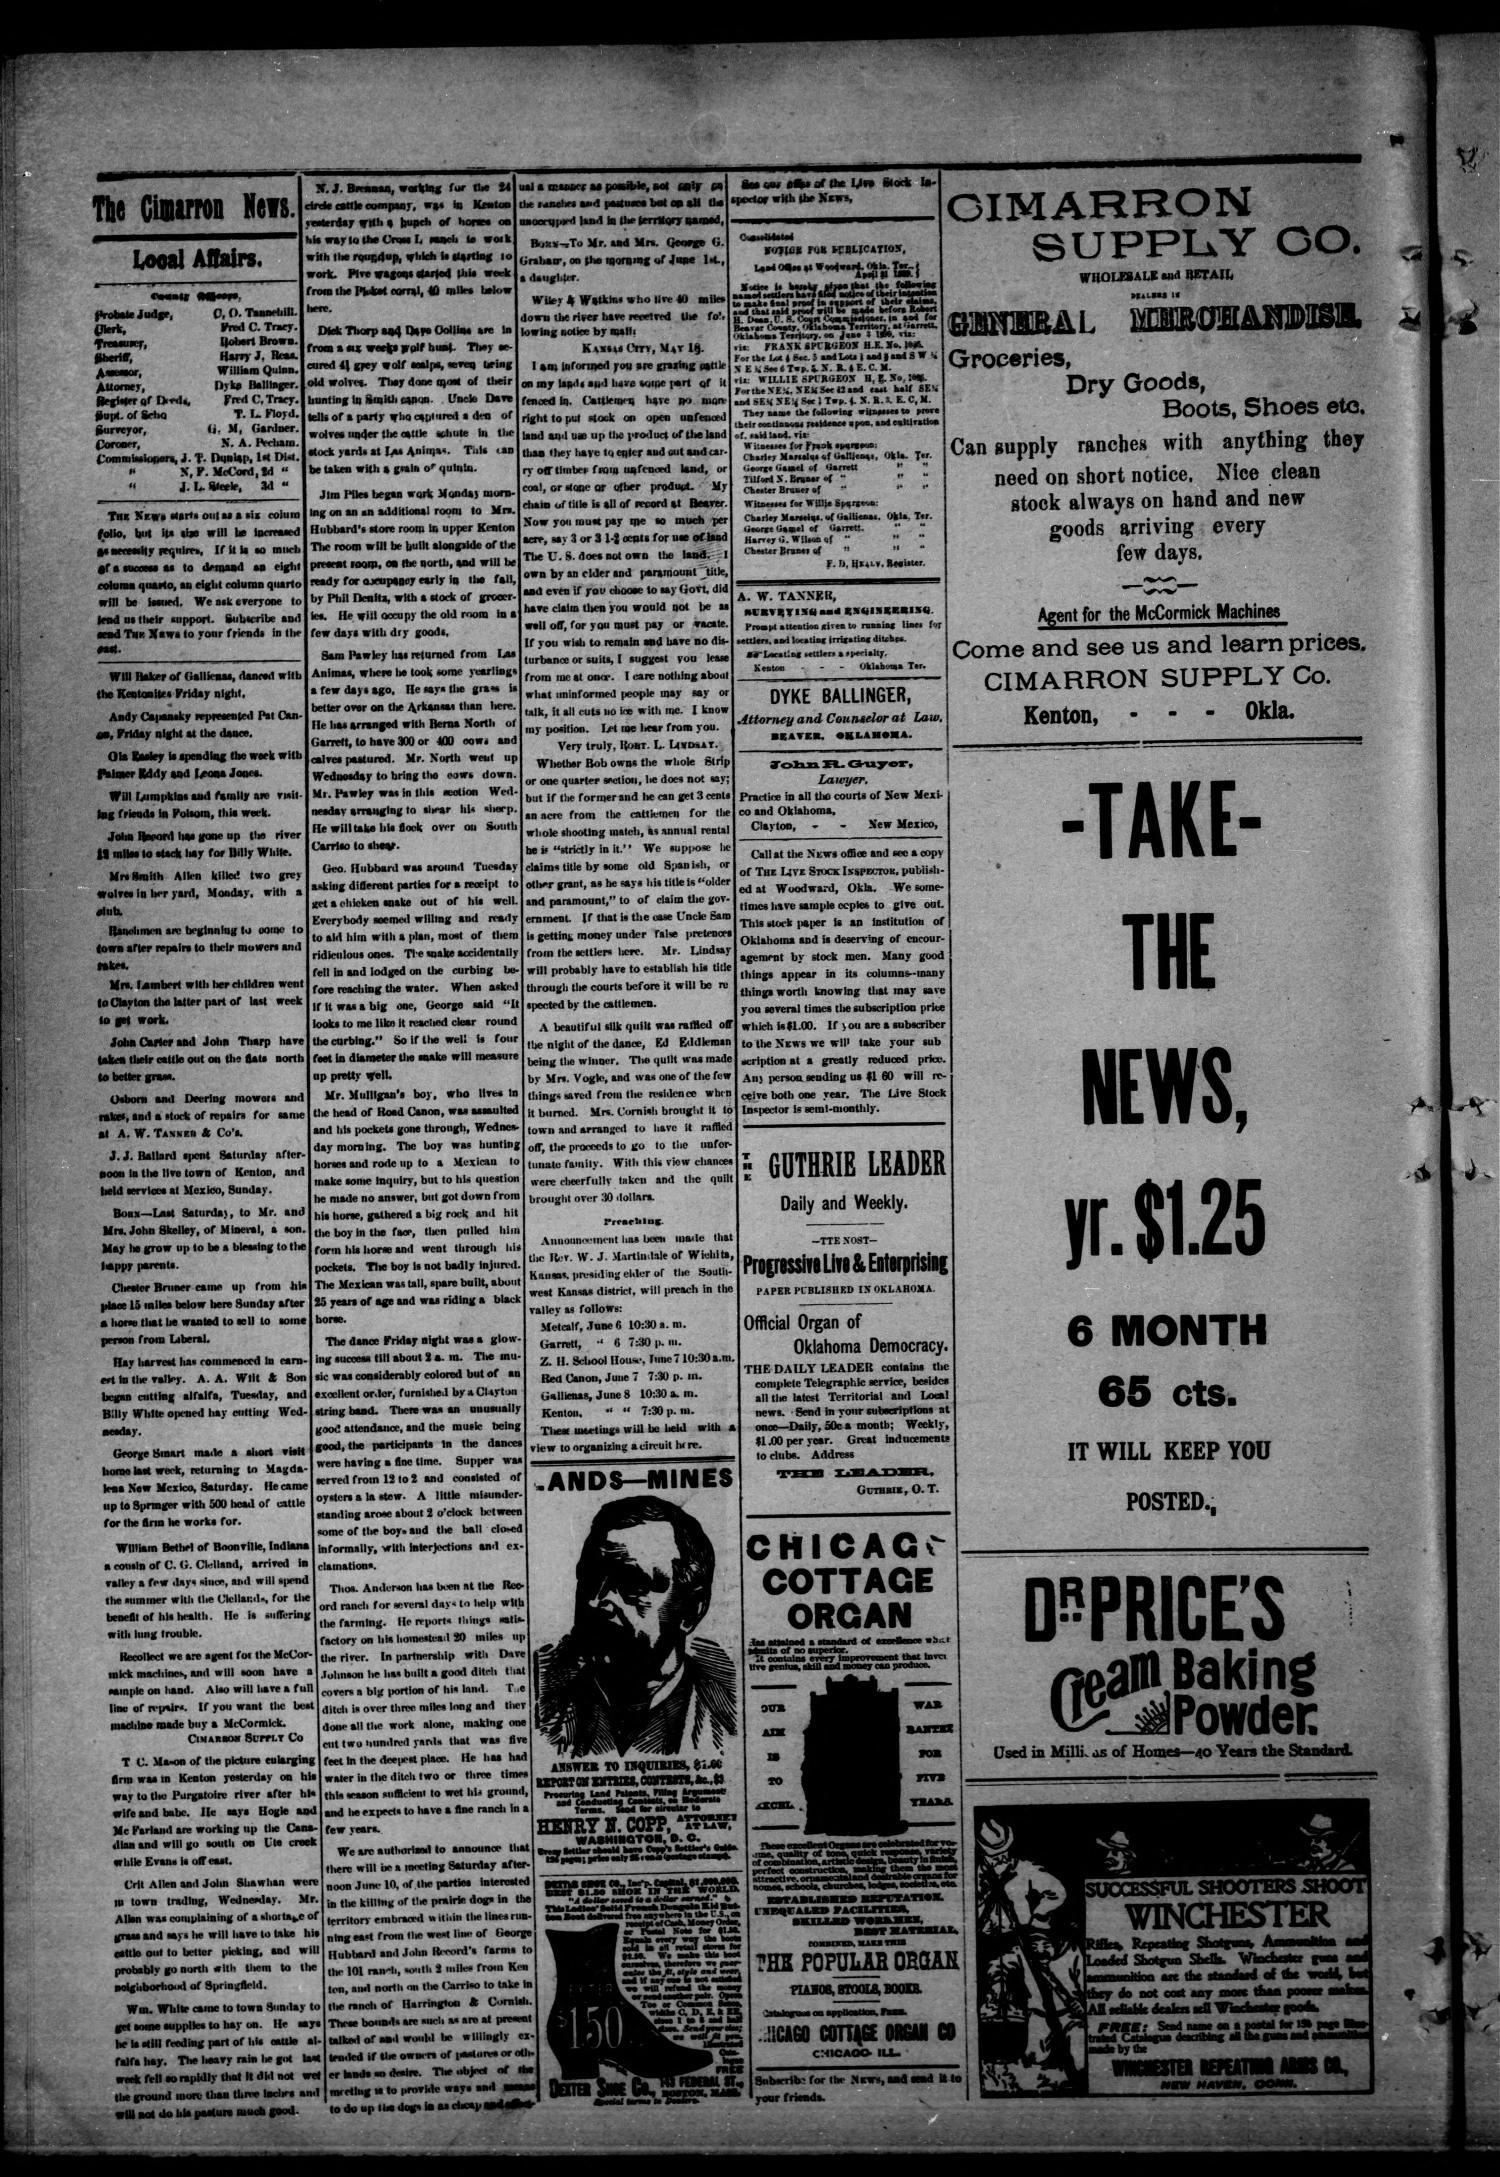 The Cimarron News. (Kenton, Okla.), Vol. 1, No. 43, Ed. 1 Friday, June 2, 1899                                                                                                      [Sequence #]: 4 of 4